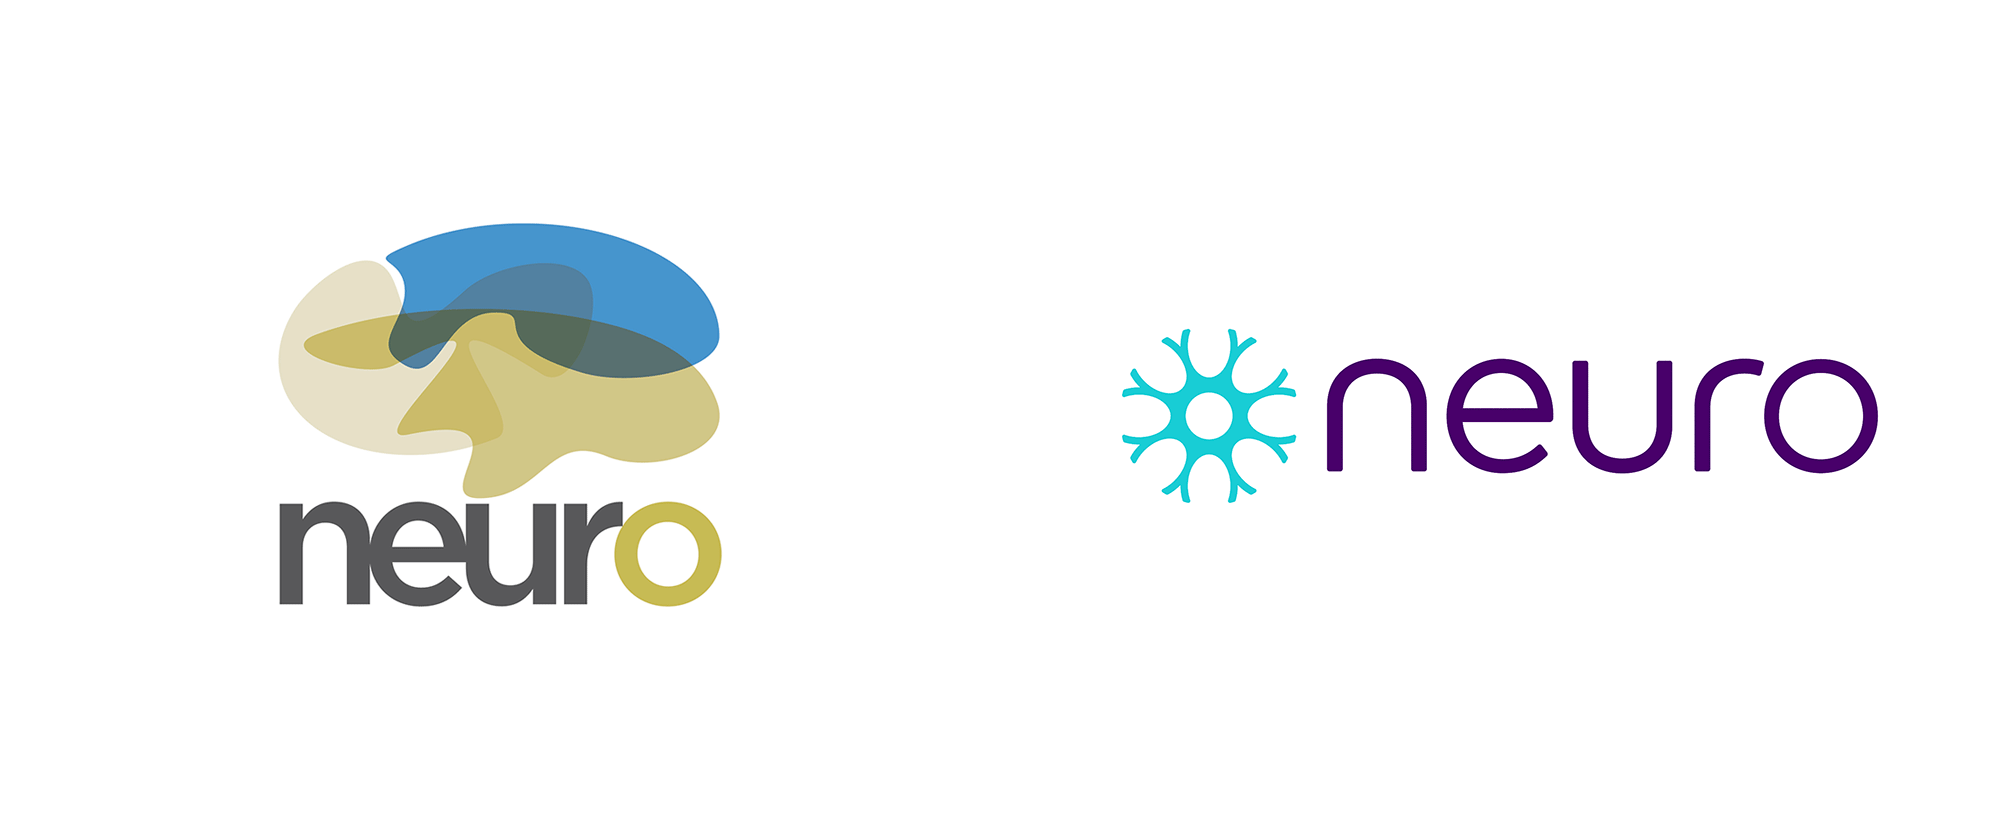 New Logo for Neuro by BrandBourg